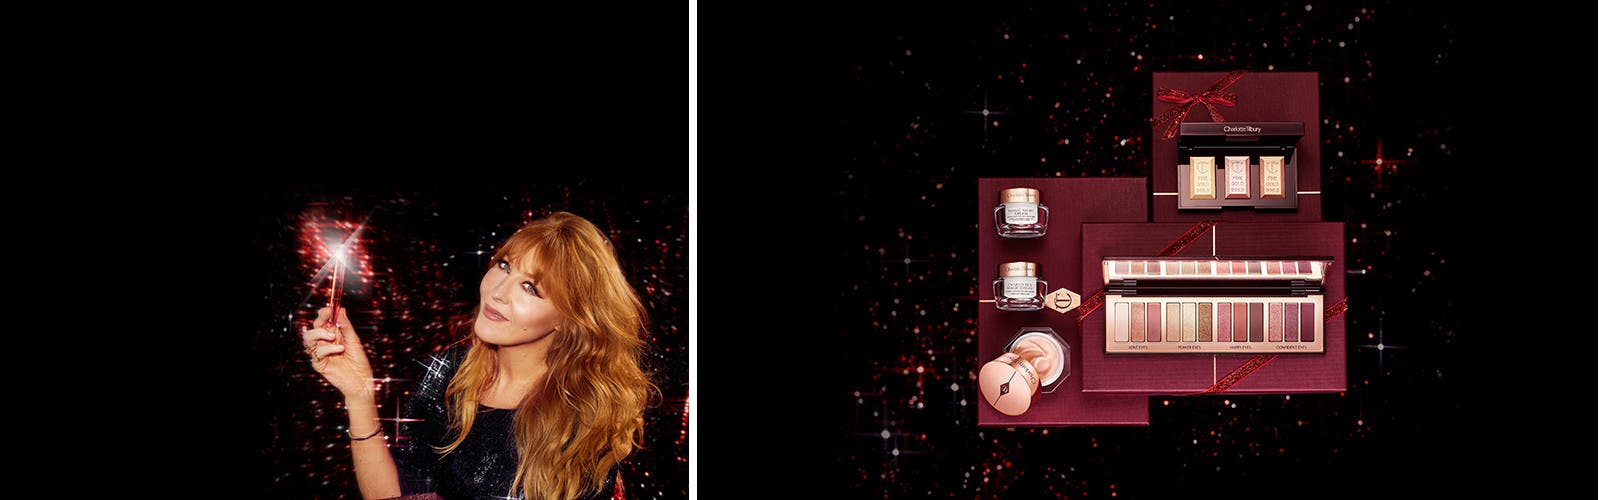 Limited-edition holiday beauty and skin care gifts from Charlotte Tilbury.